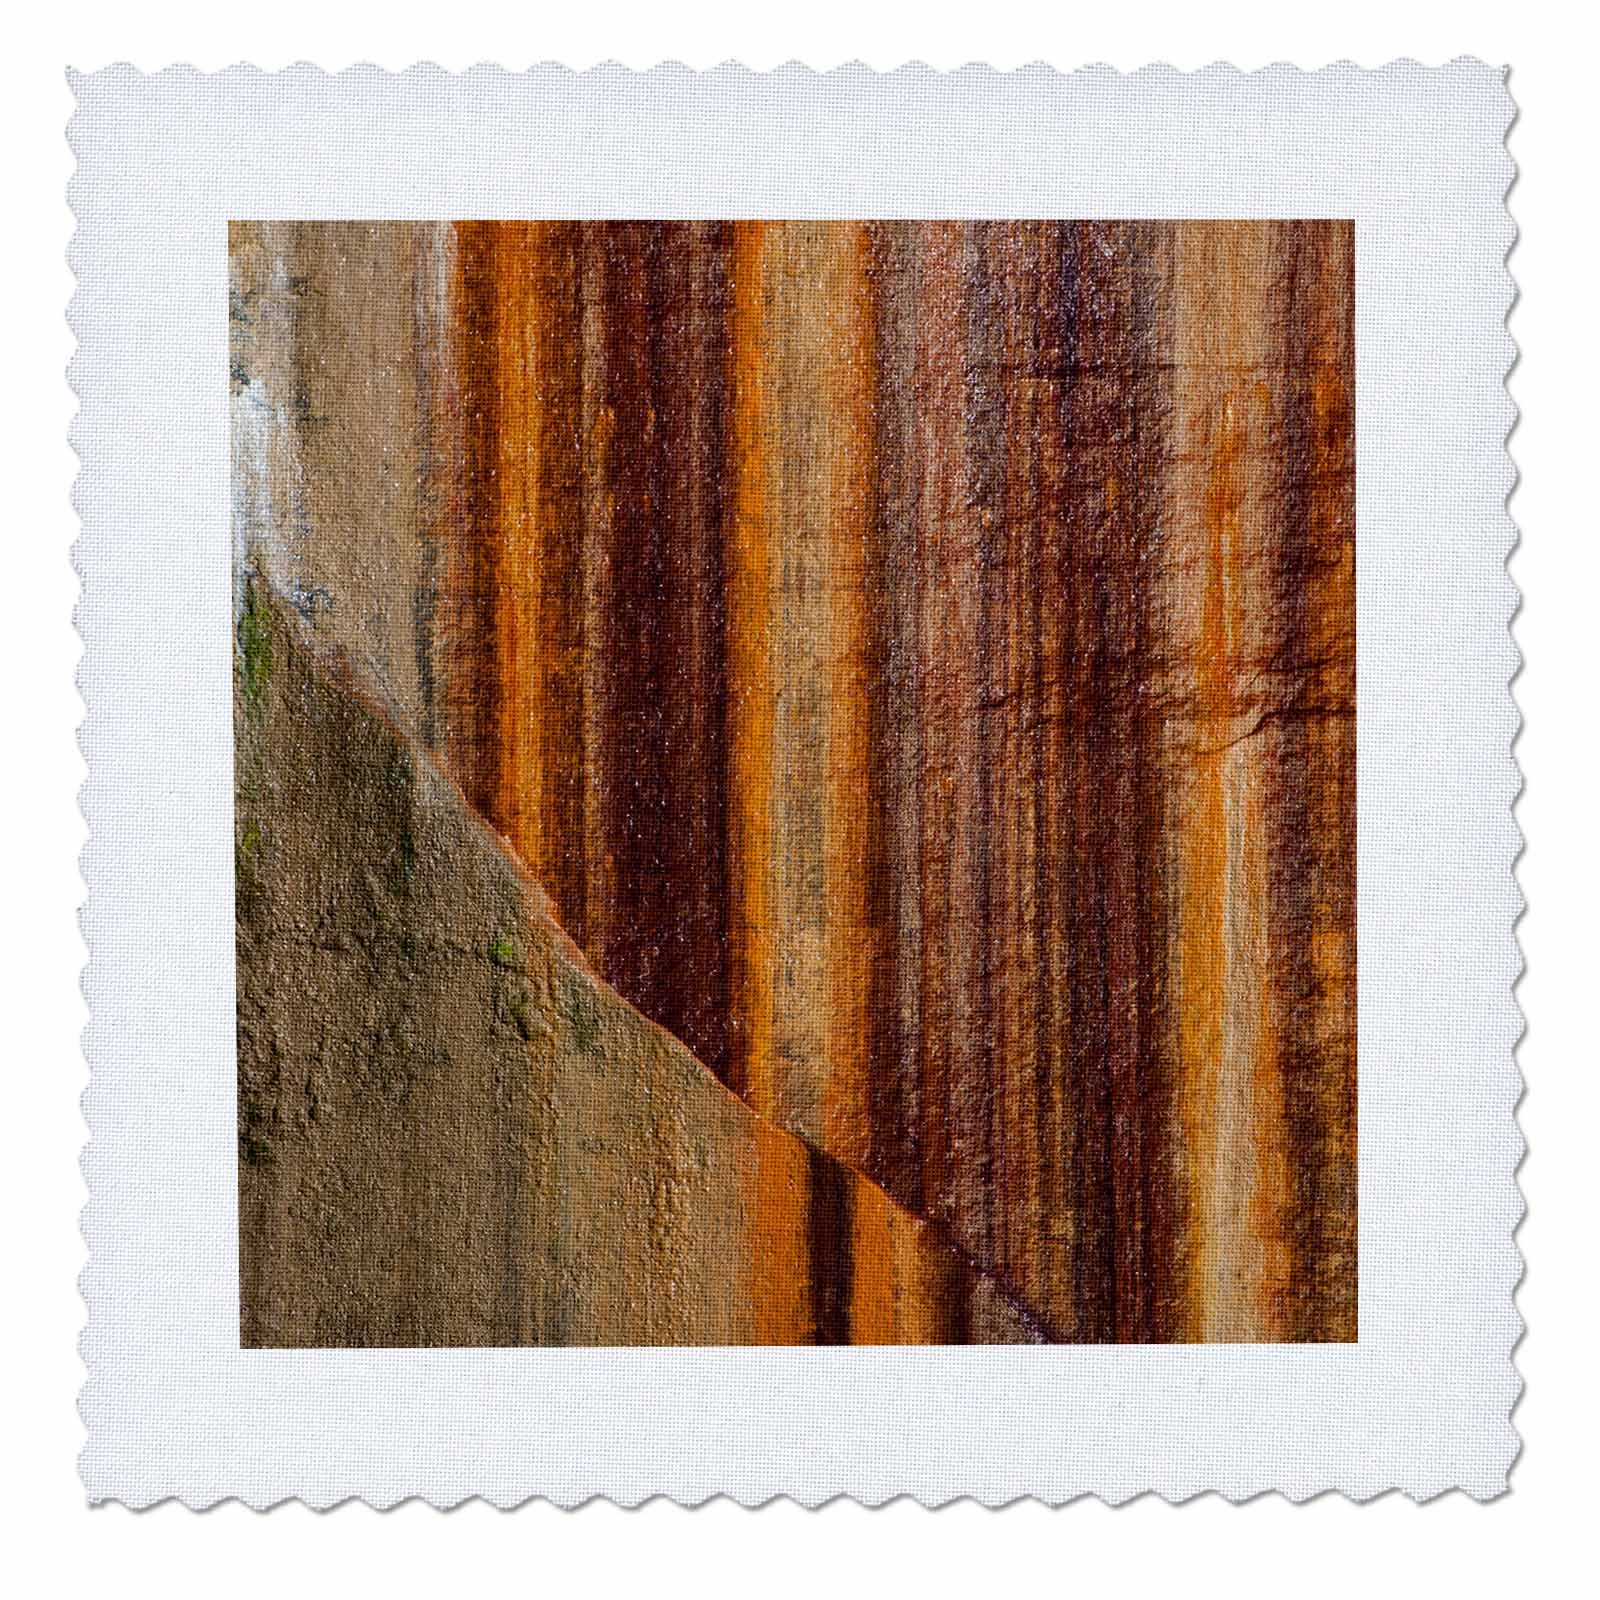 3dRose Danita Delimont - Abstracts - Mineral seep wall abstract, Lake Superior, Pictured Rocks, Michigan - 20x20 inch quilt square (qs_259518_8)